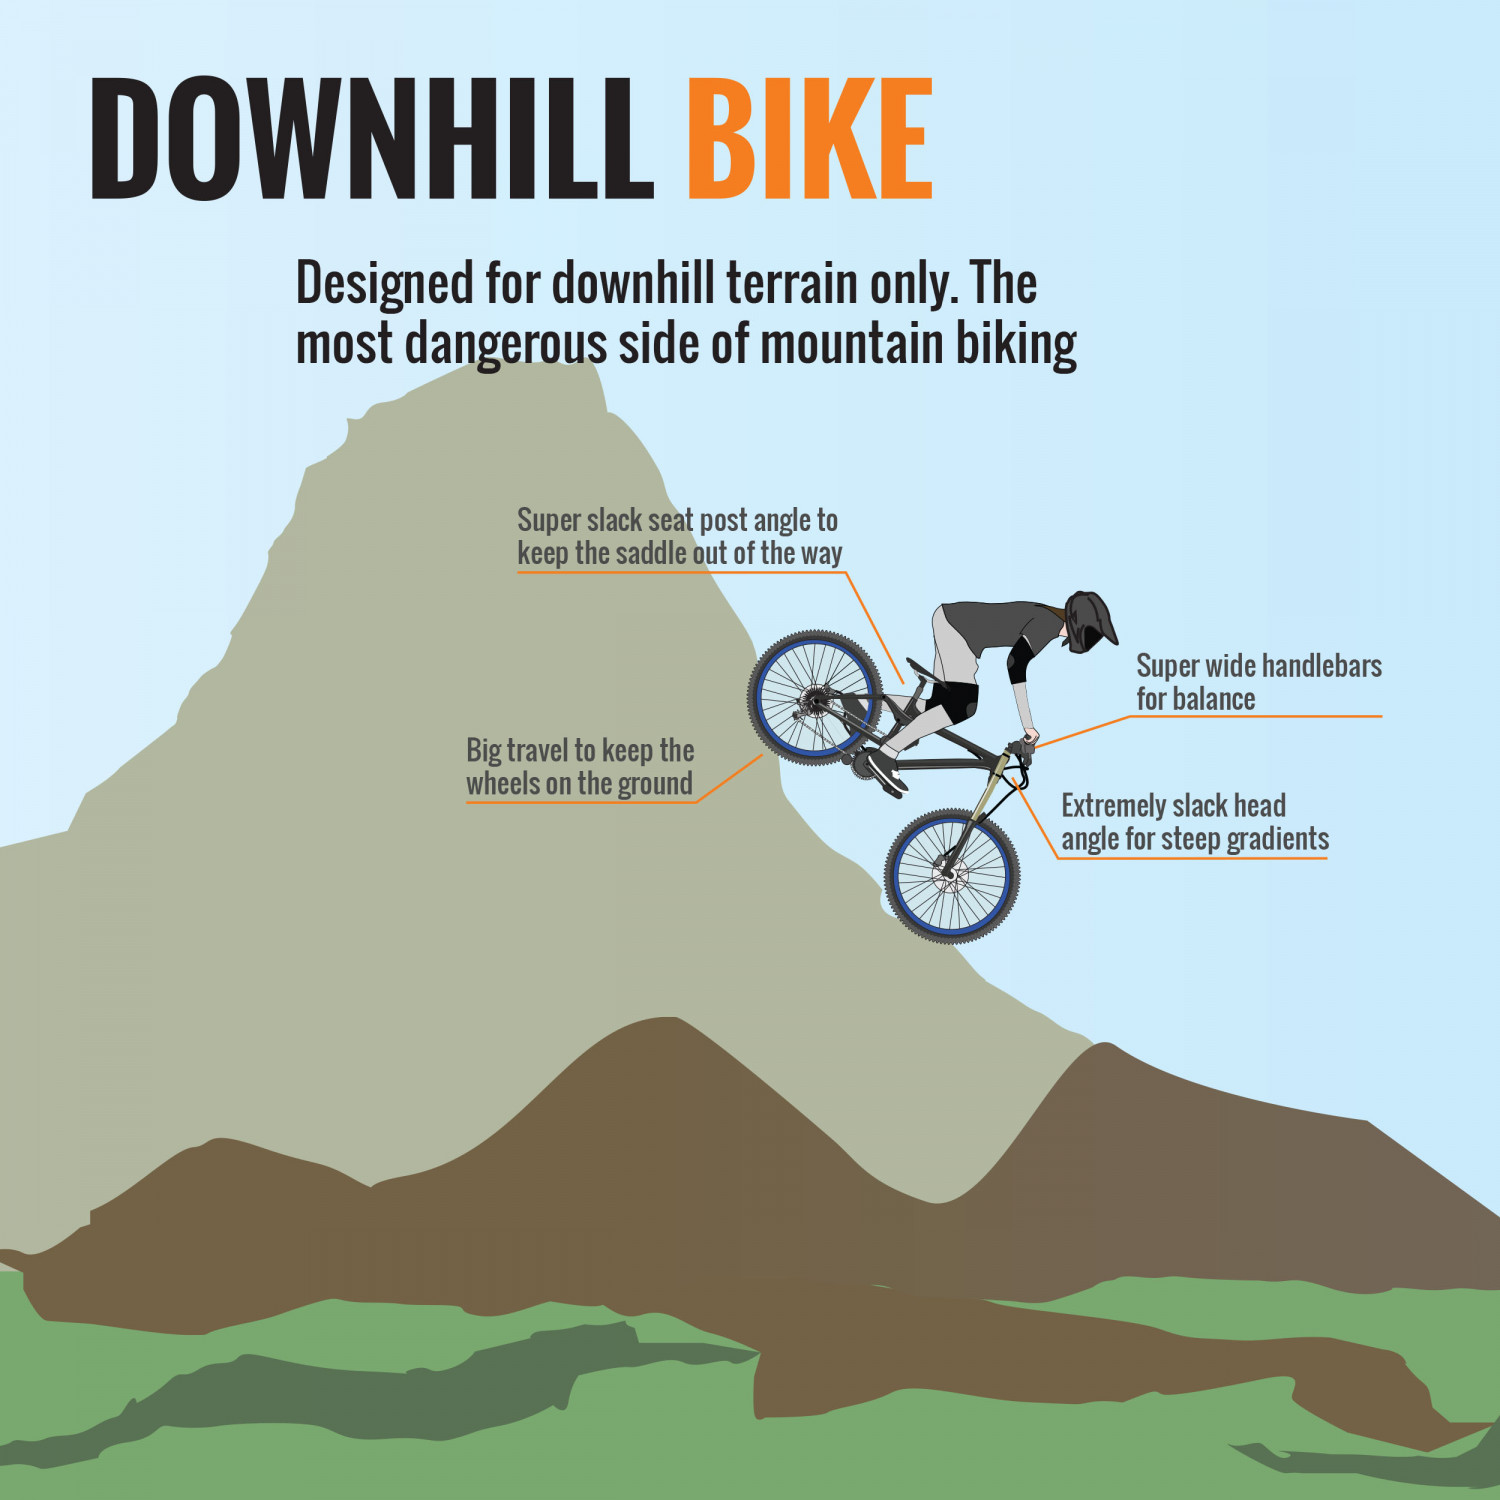 Anatomy of a Bicycle (Part VII) - Downhill | Visual.ly